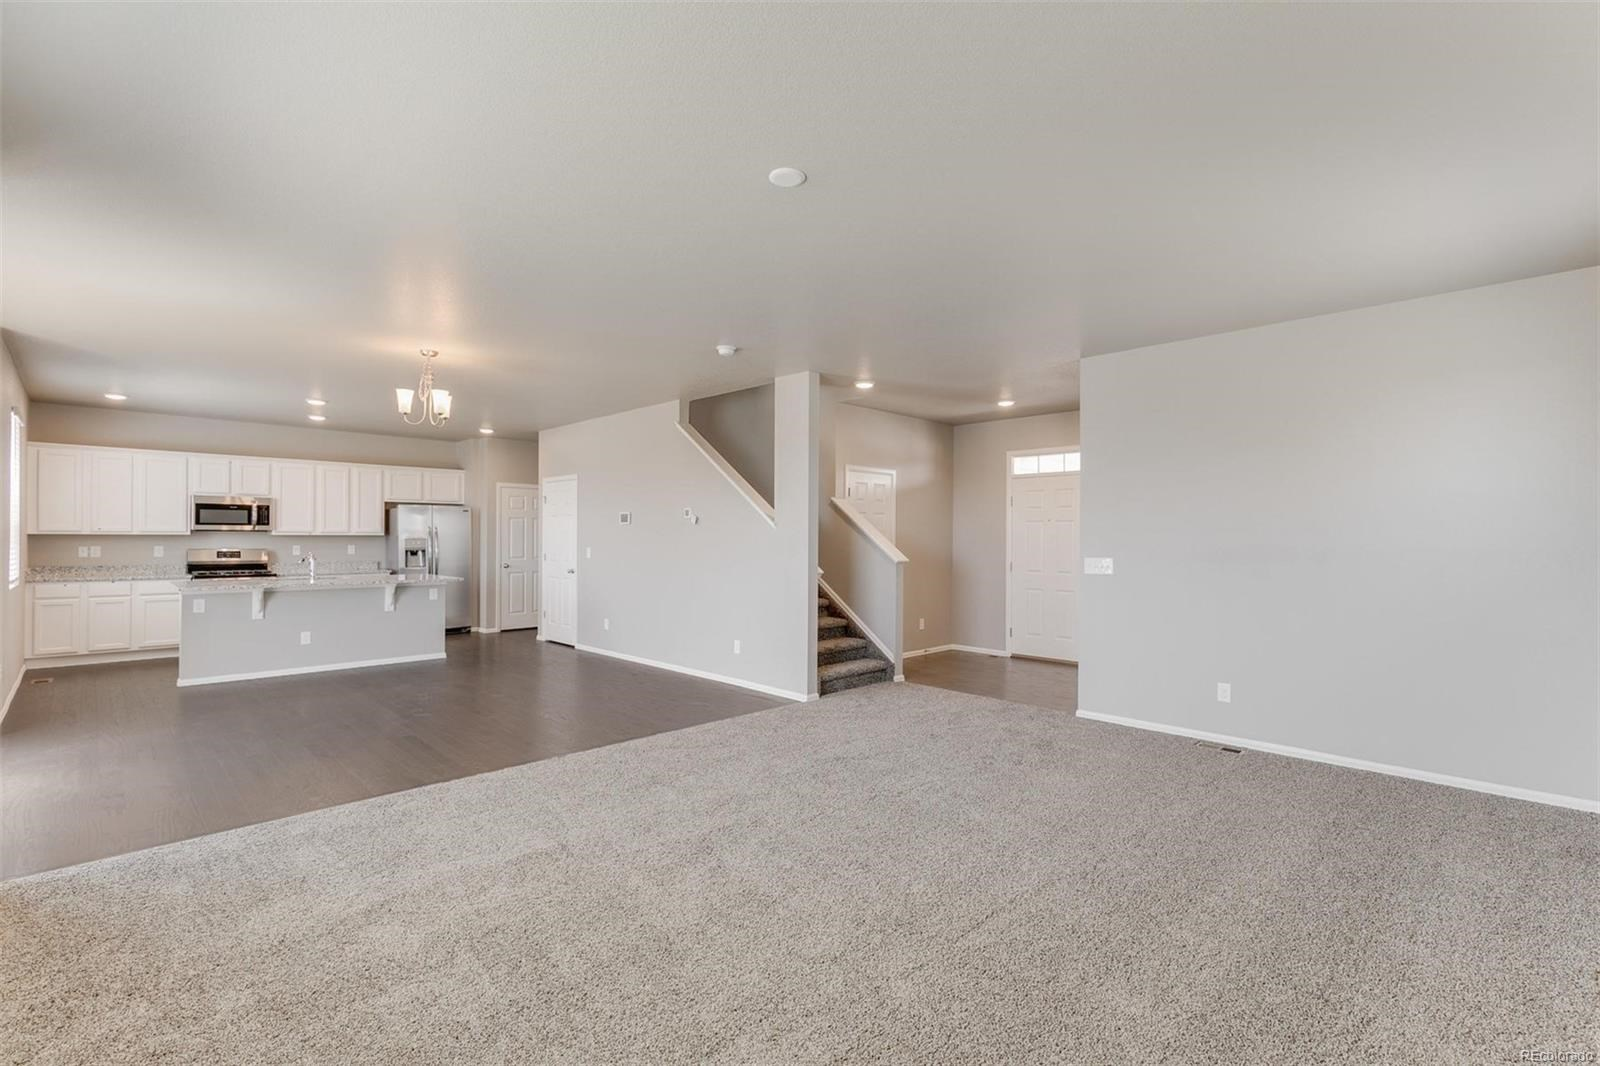 MLS# 3645271 - 2 - 6915 Grainery Court, Timnath, CO 80547